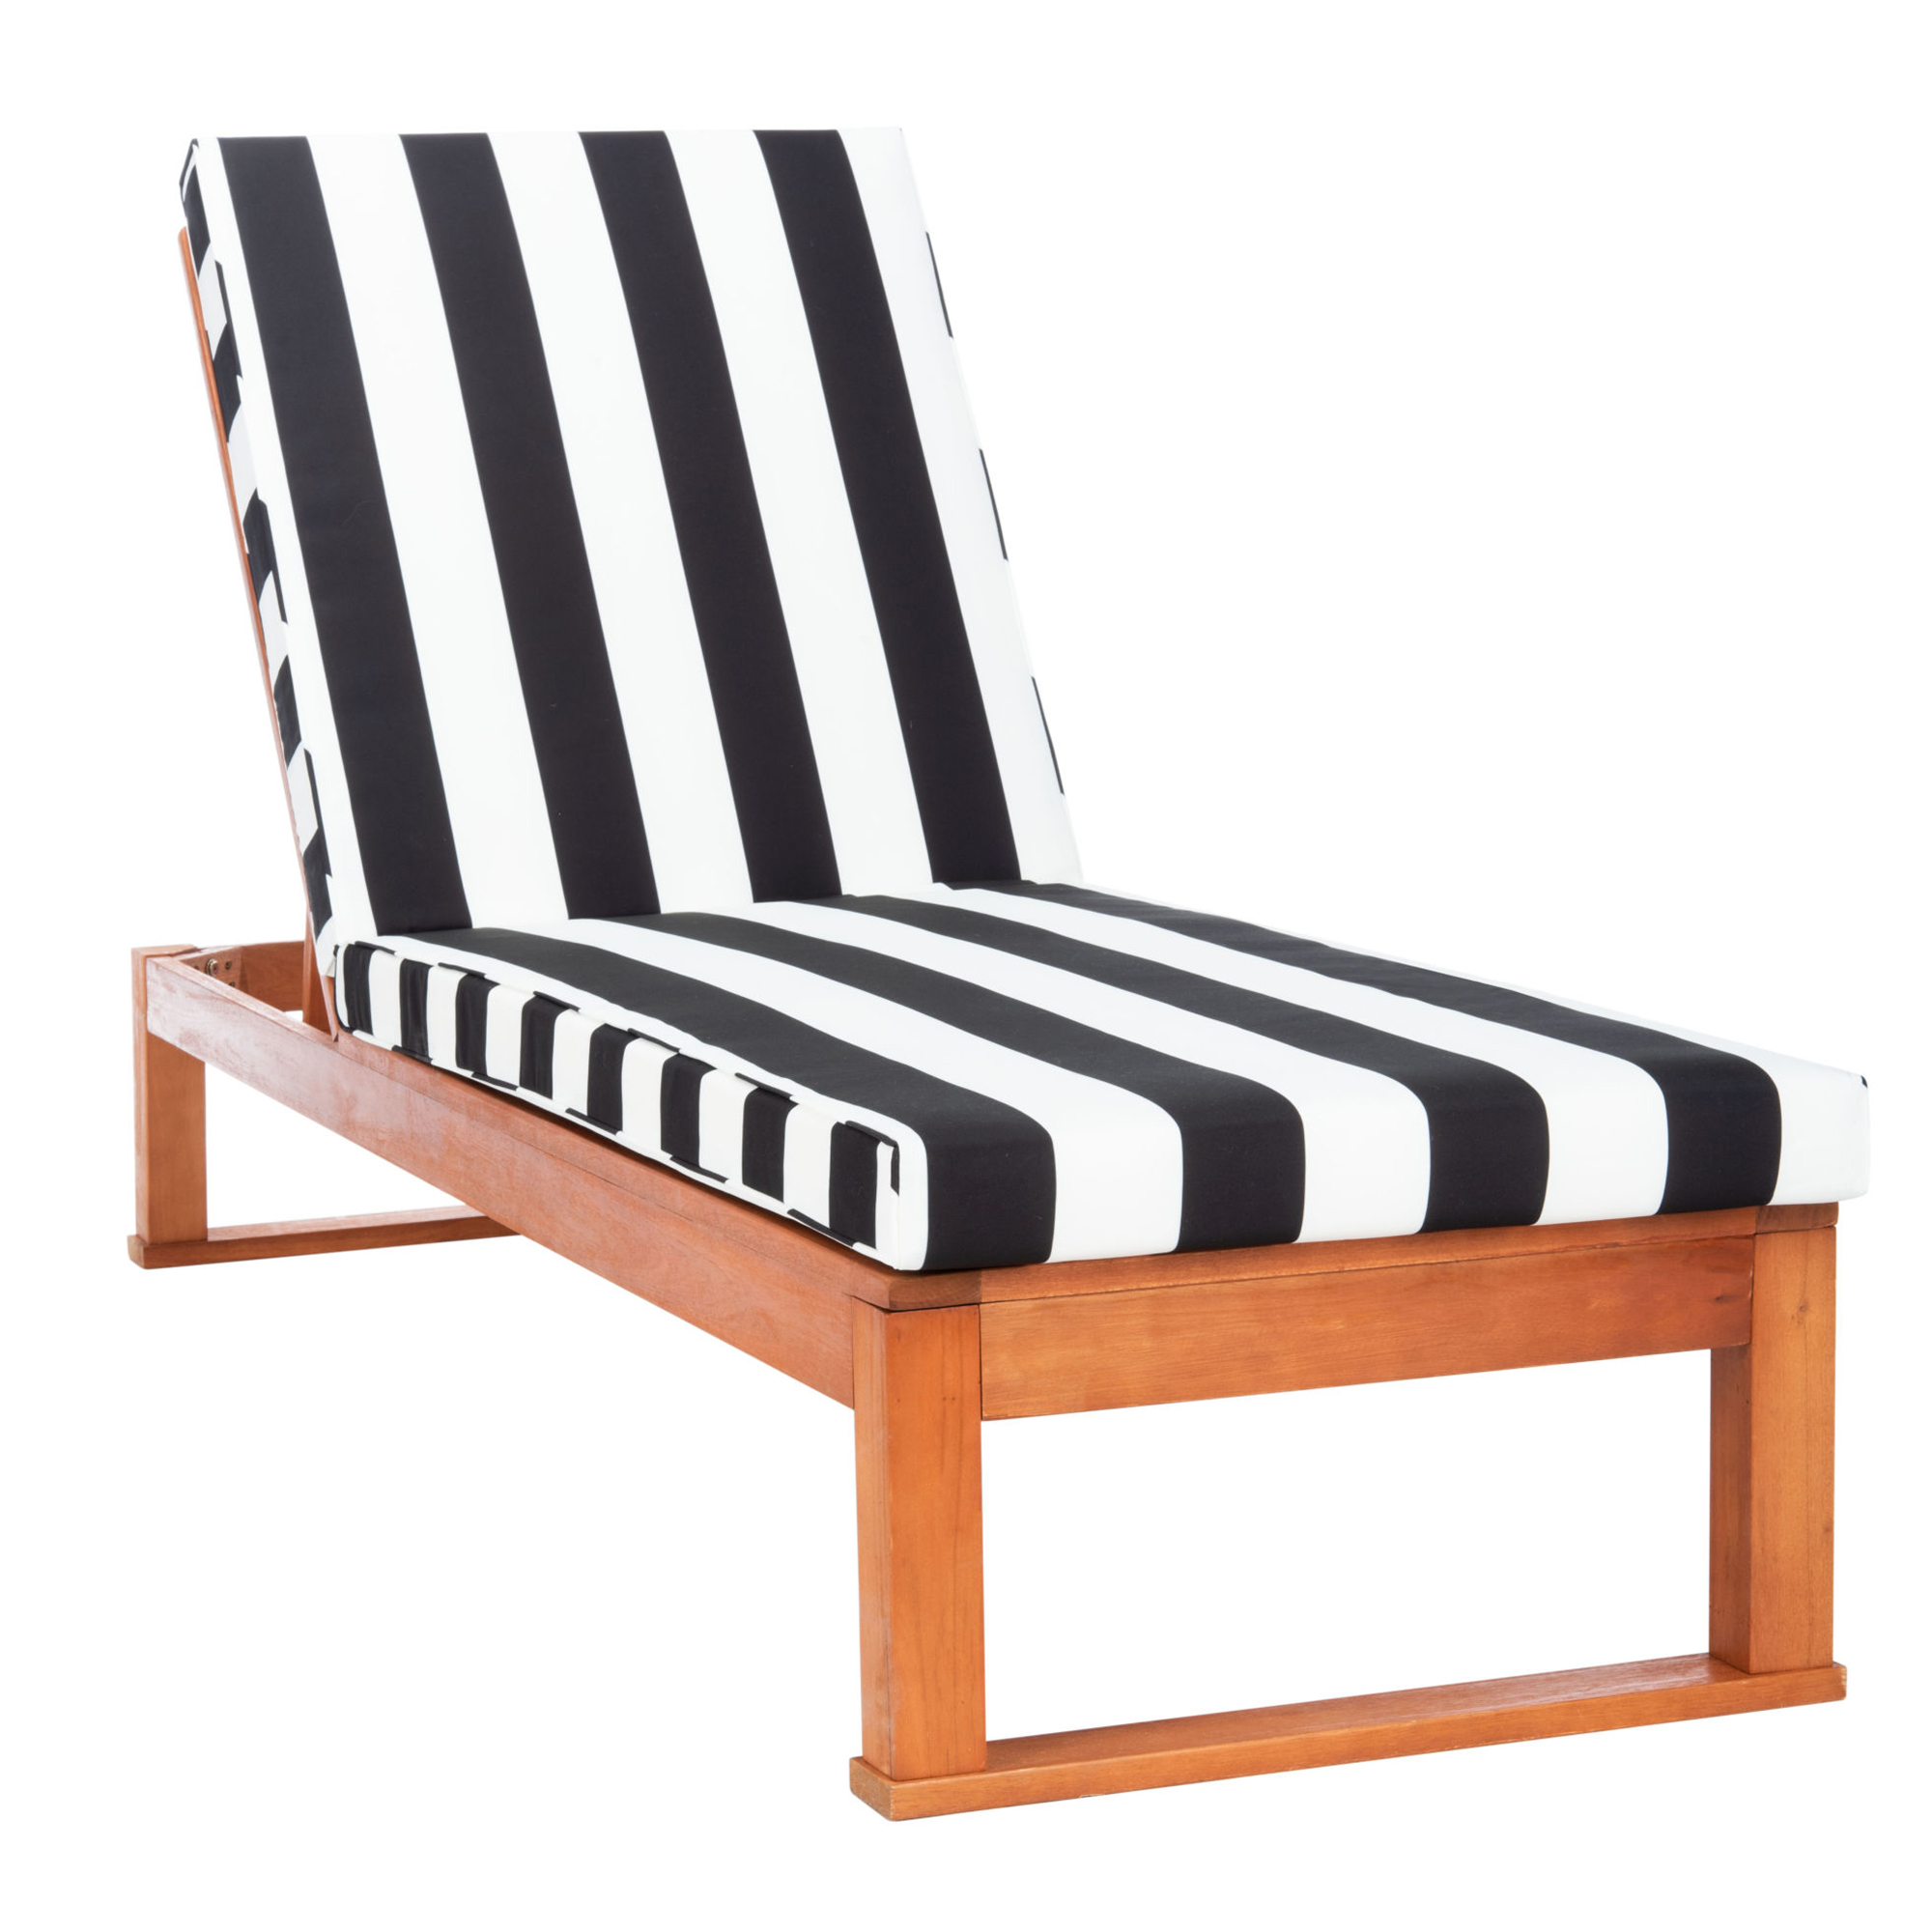 Solano Sunlounger on Safavieh Outdoor Living Solano Sunlounger id=82557